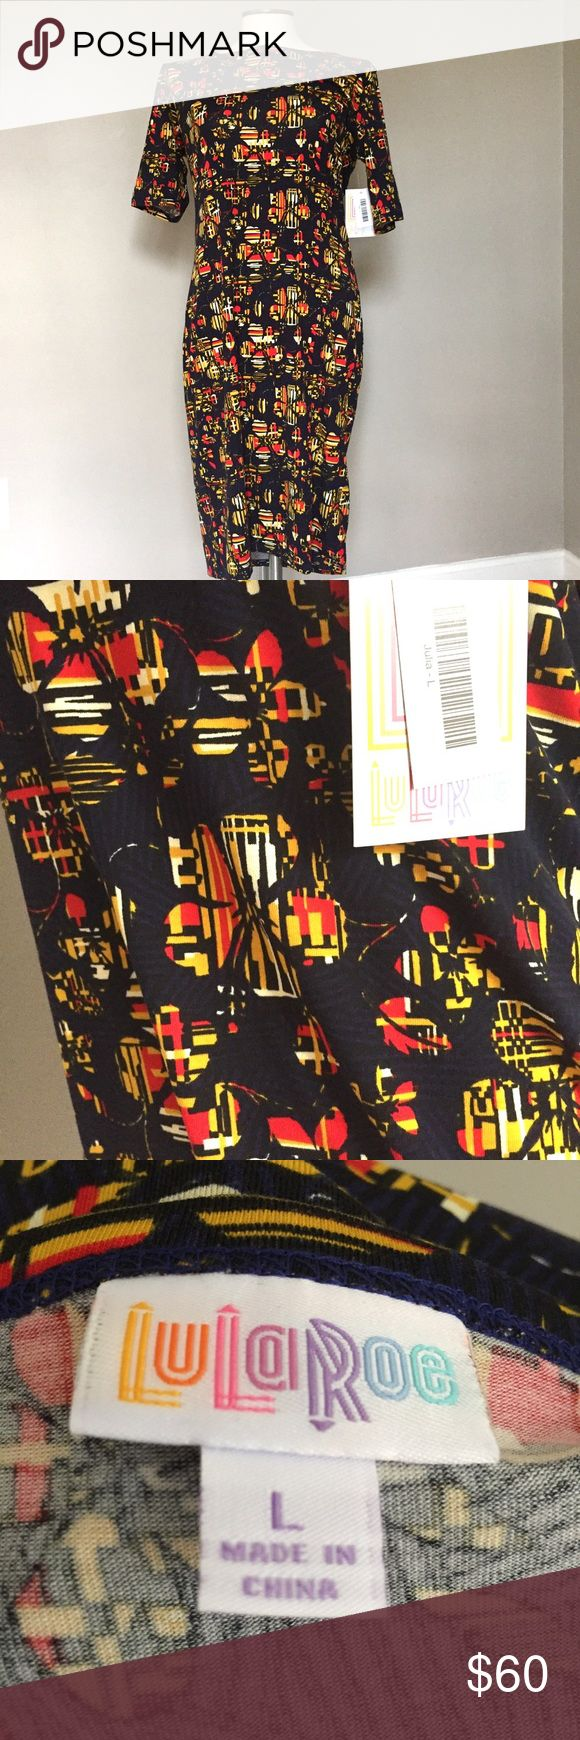 """Lularoe NEW Julia stretch bodycon floral dress L Brand new with tags.  The Julia dress is a form fitting, knee- length, knit dress with mid-length sleeves and a high neckline. Simple silhouette for casual days or dress up with accessories. All season wear perfect for layering.  Approximate flat lay measurements: Length: 40"""" Bust across pit to pit: 19"""" with stretch for more A LuLaRoe Dresses"""